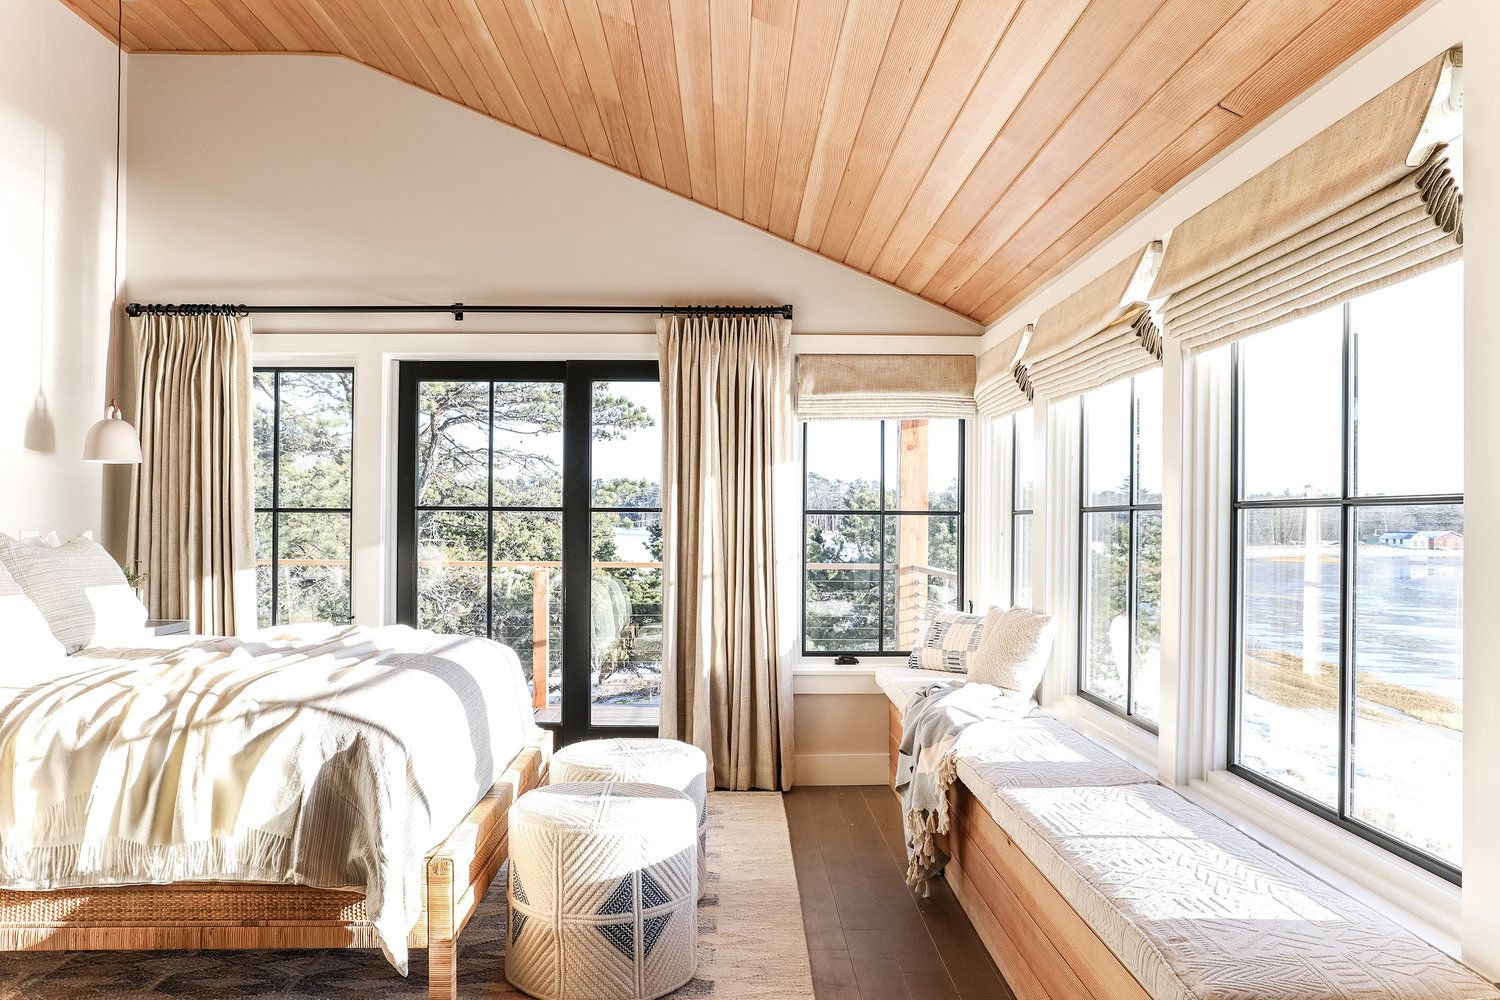 21 Rustic Bedroom Decor Ideas That Are as Sleek as They Are Snuggly